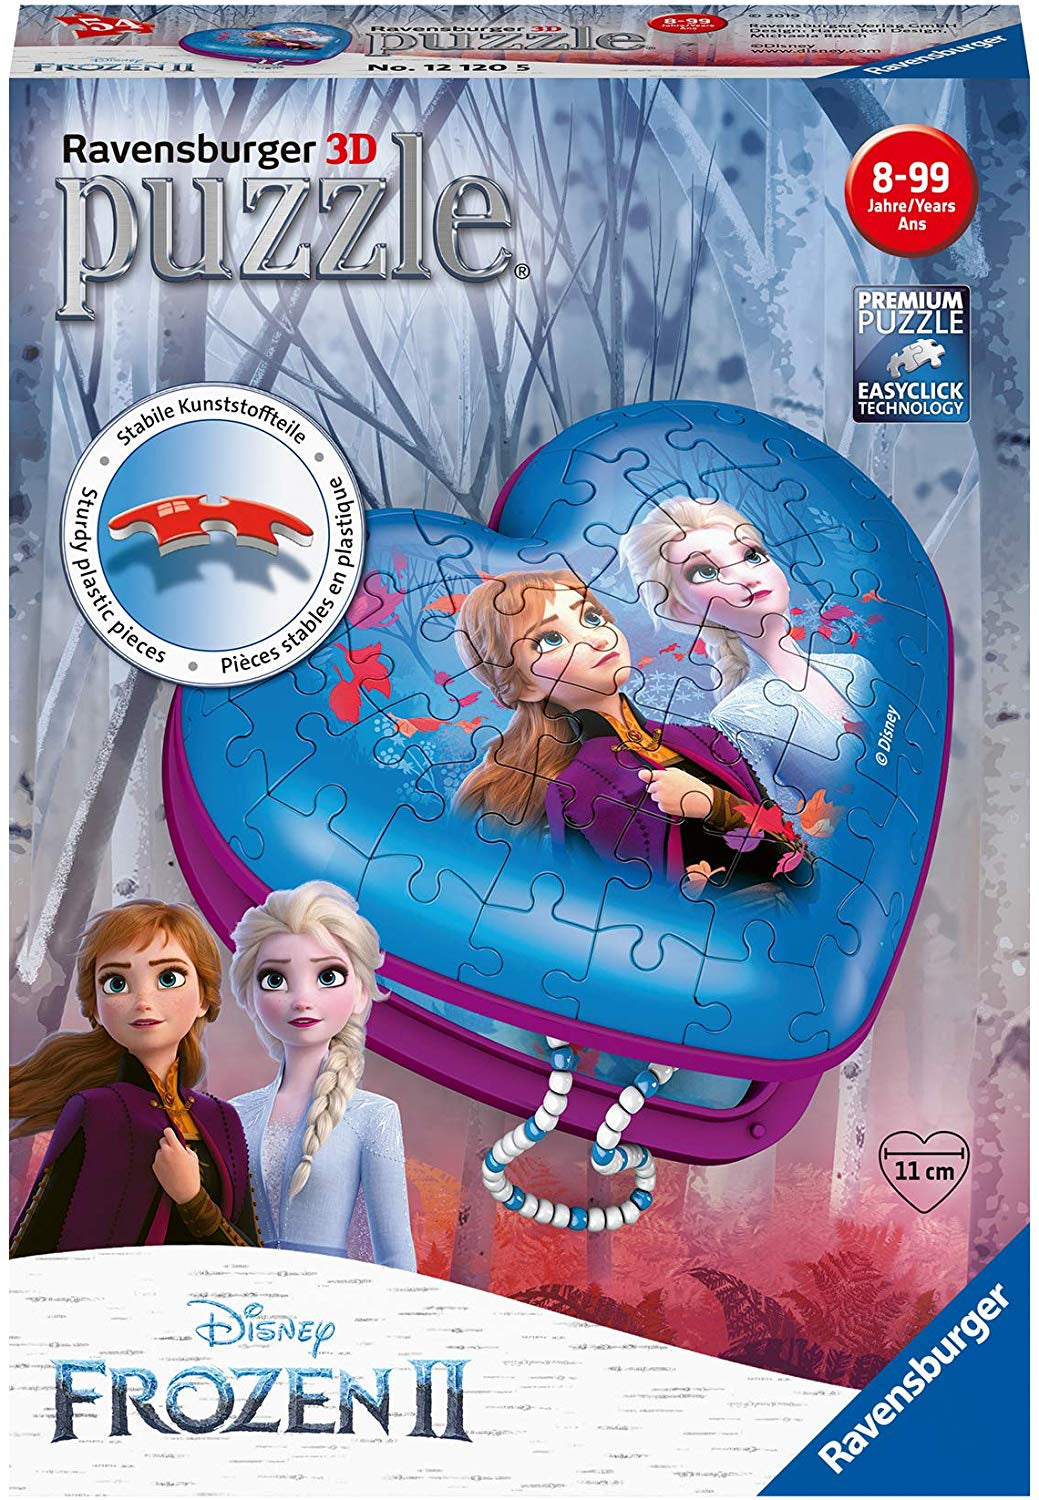 Disney Frozen Heart Shaped 3D Jigsaw Puzzle